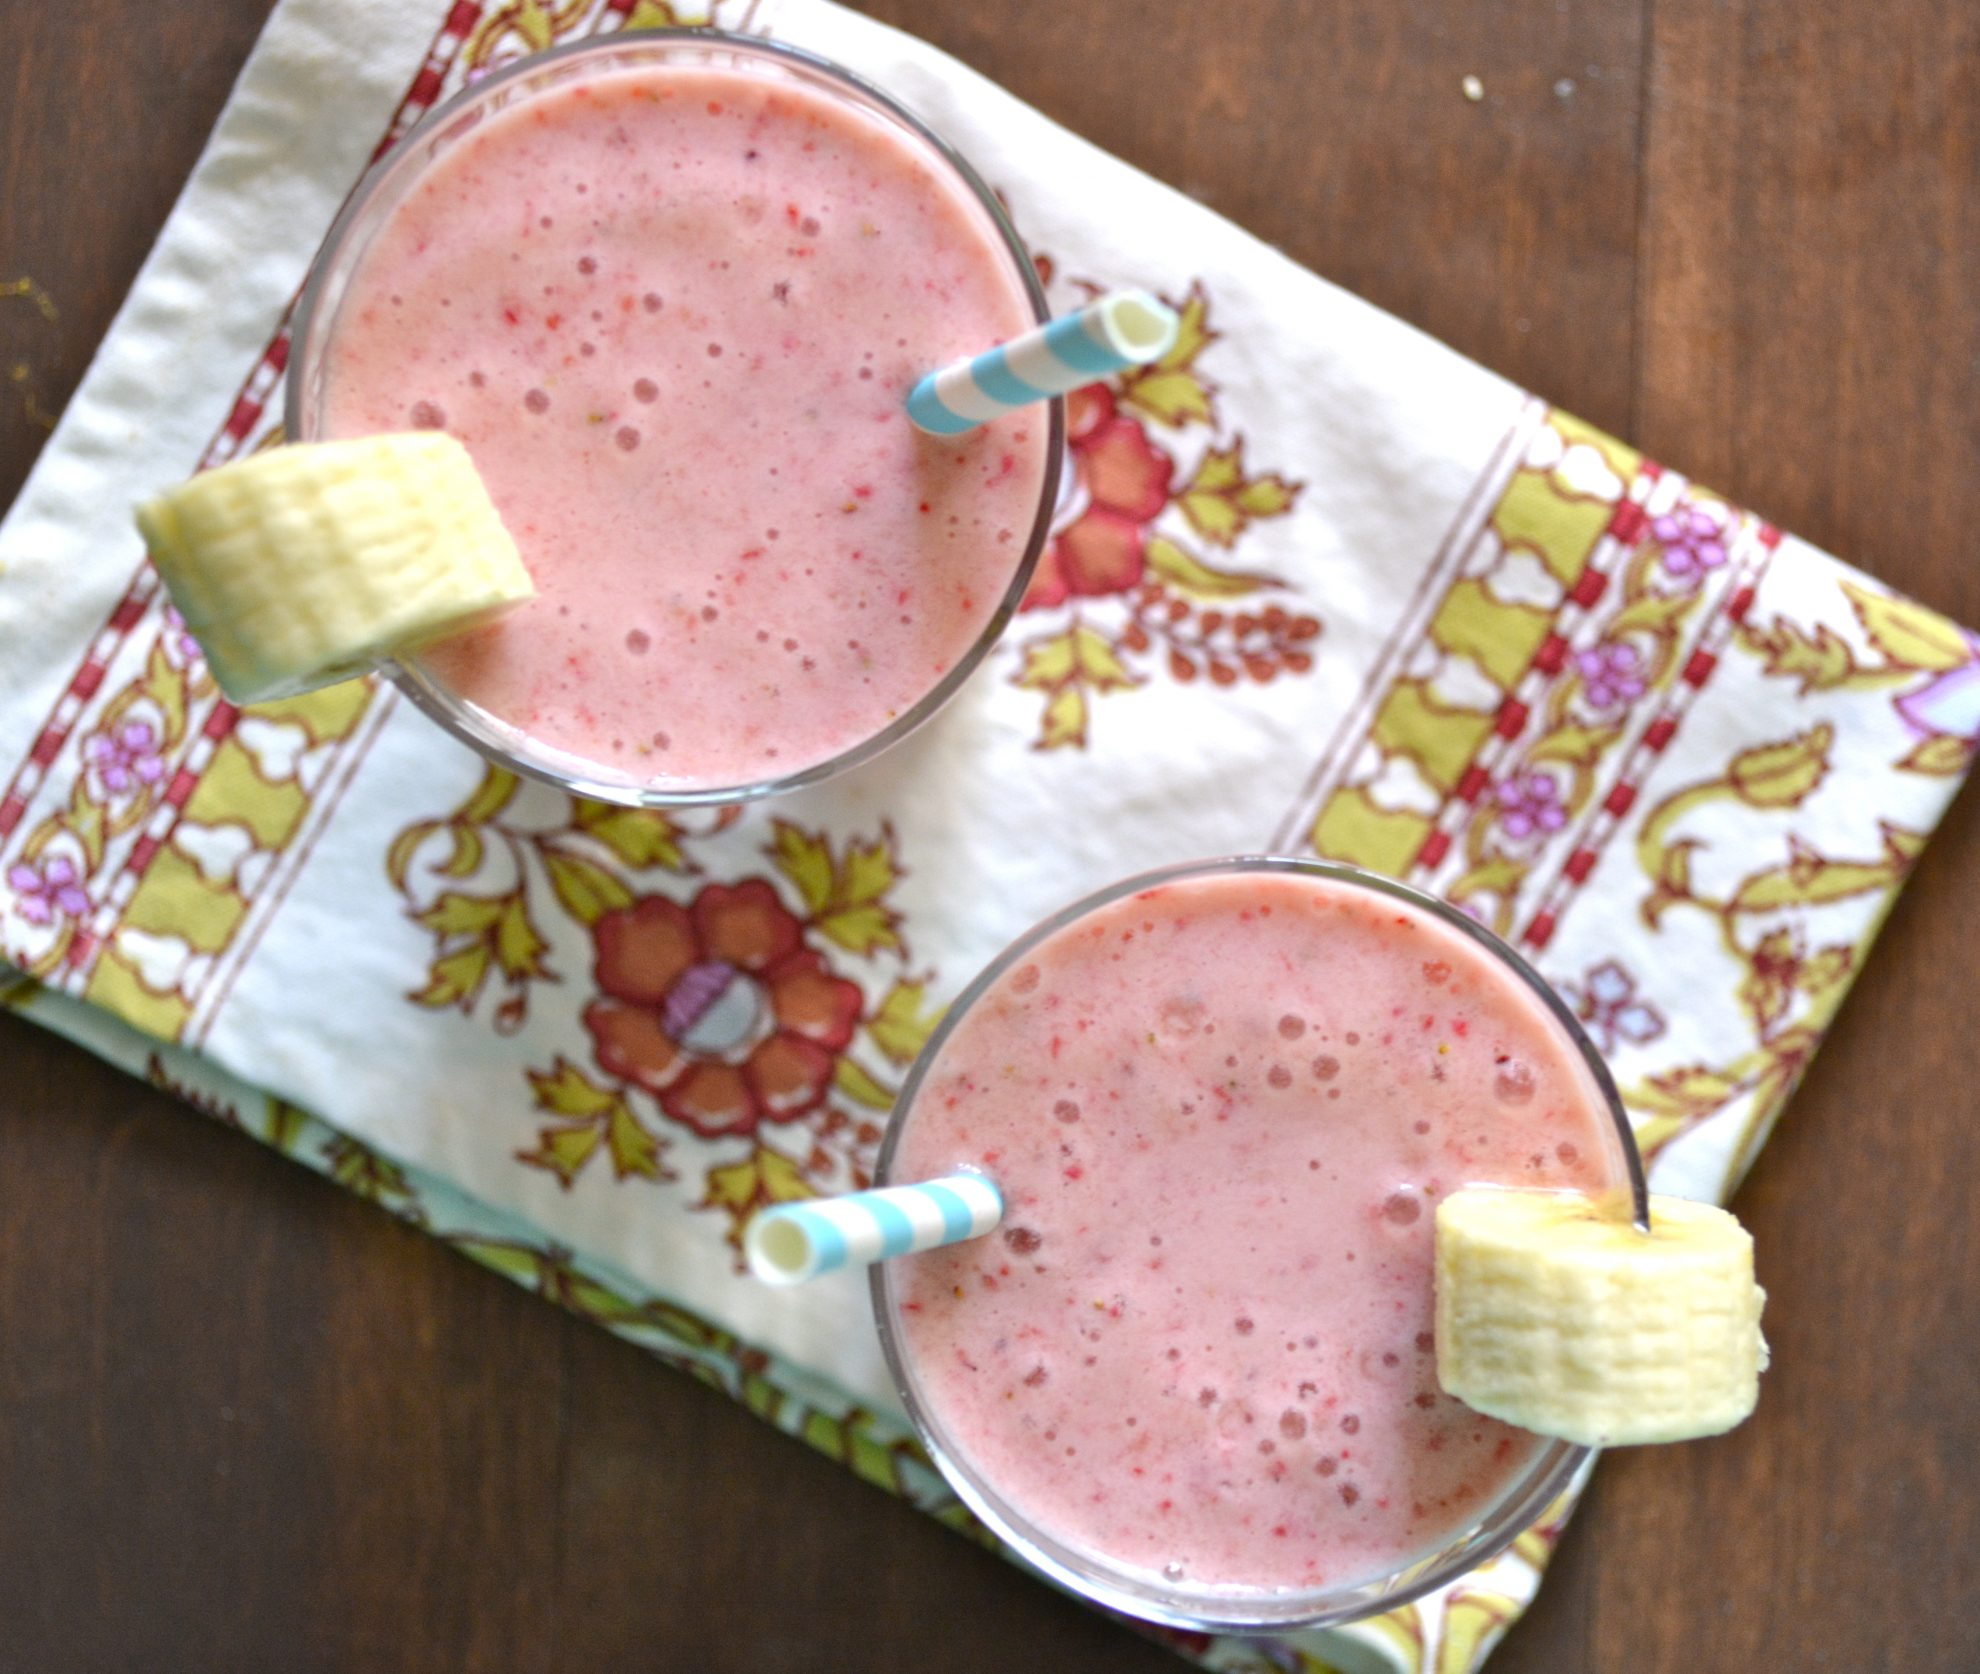 two glasses of strawberry and banana smoothie with straws